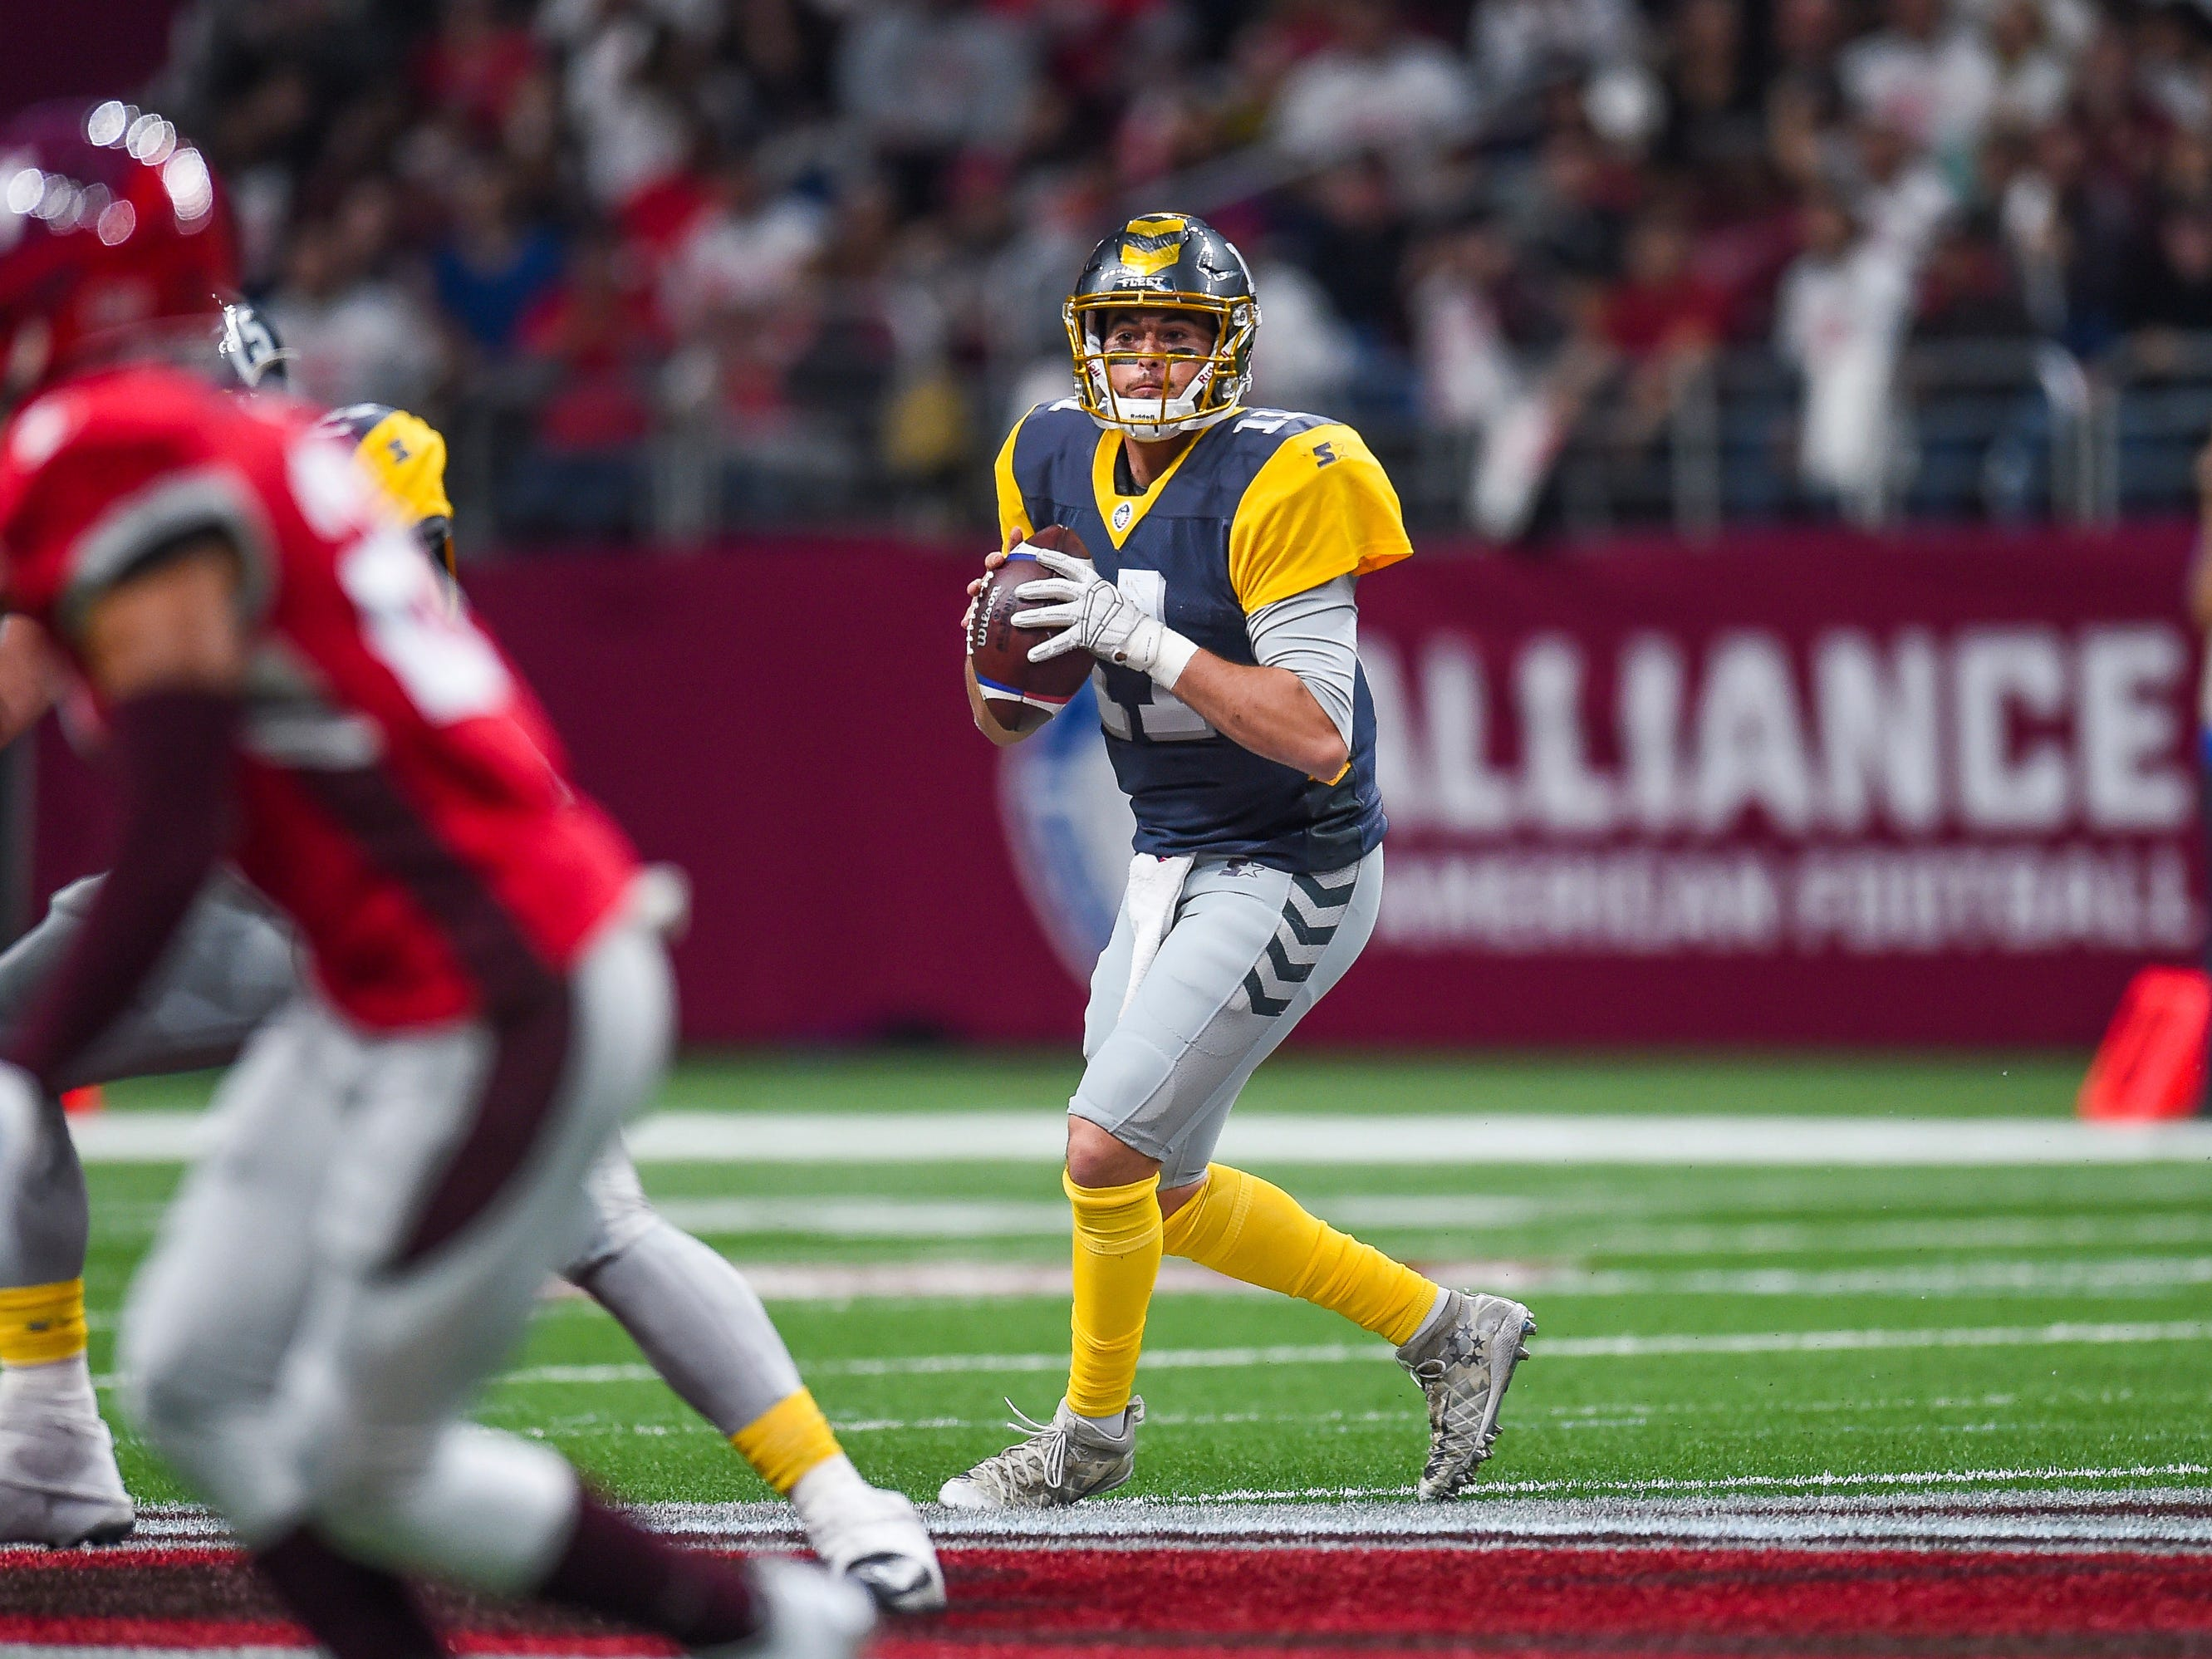 San Diego Fleet quarterback Mike Bercovici looks to pass during the AAF game against the San Antonio Commanders at the Alamodome in San Antonio. The Commanders won the game, 15-6.